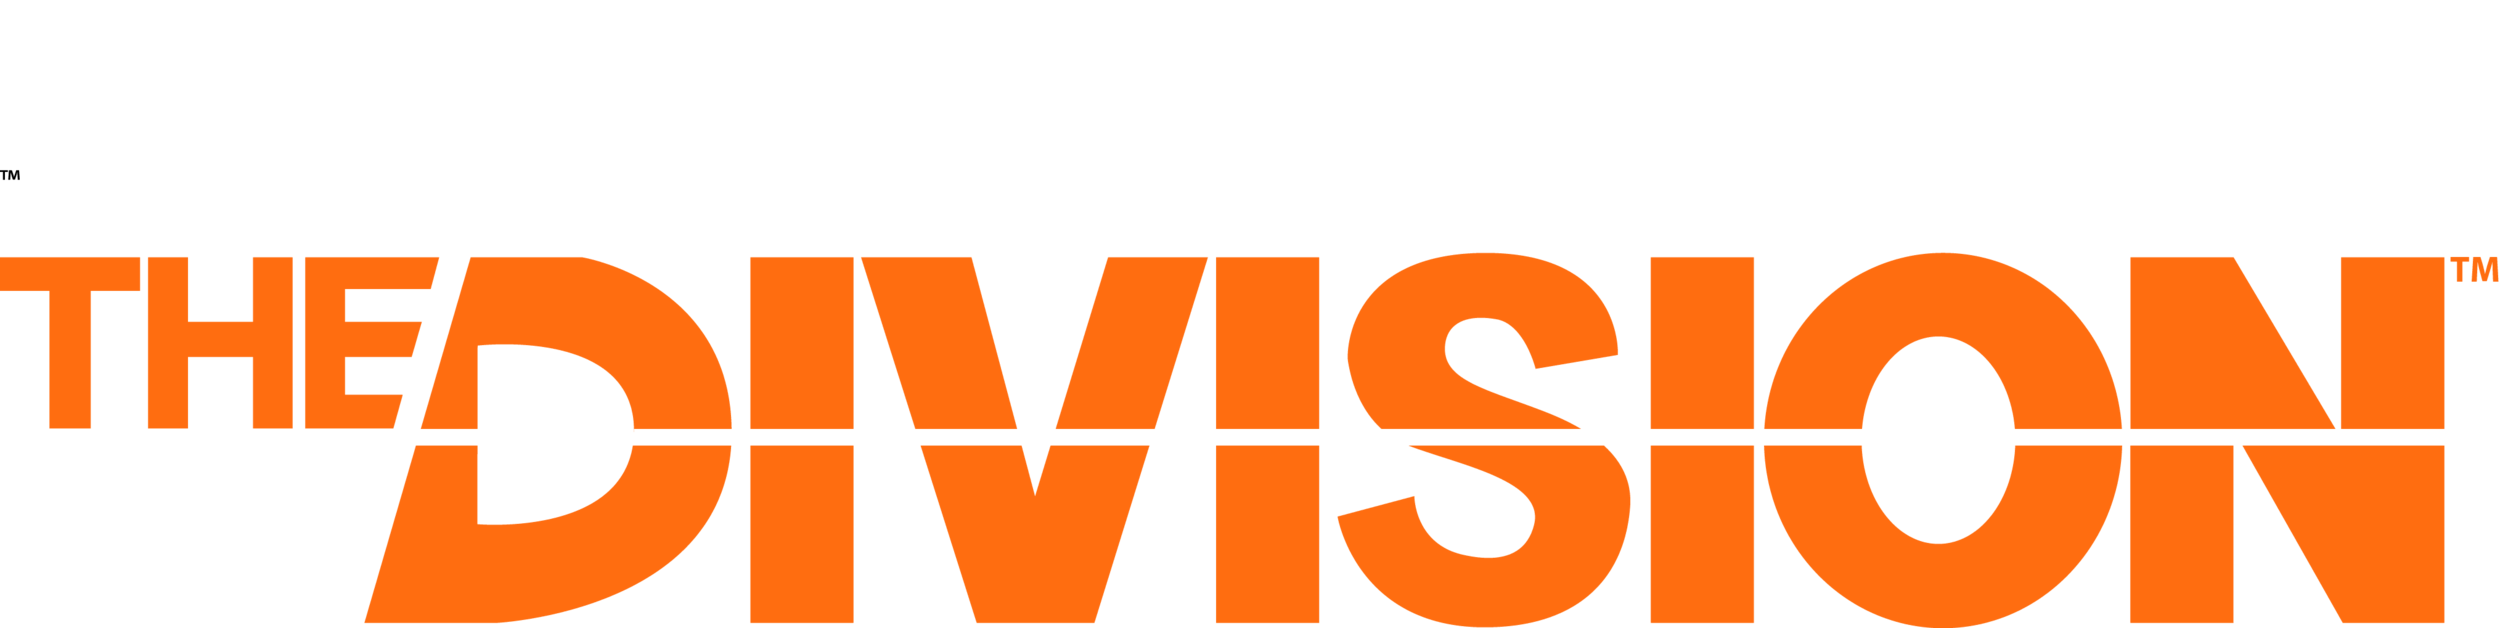 tom-clancys-the-division-logo copy.png